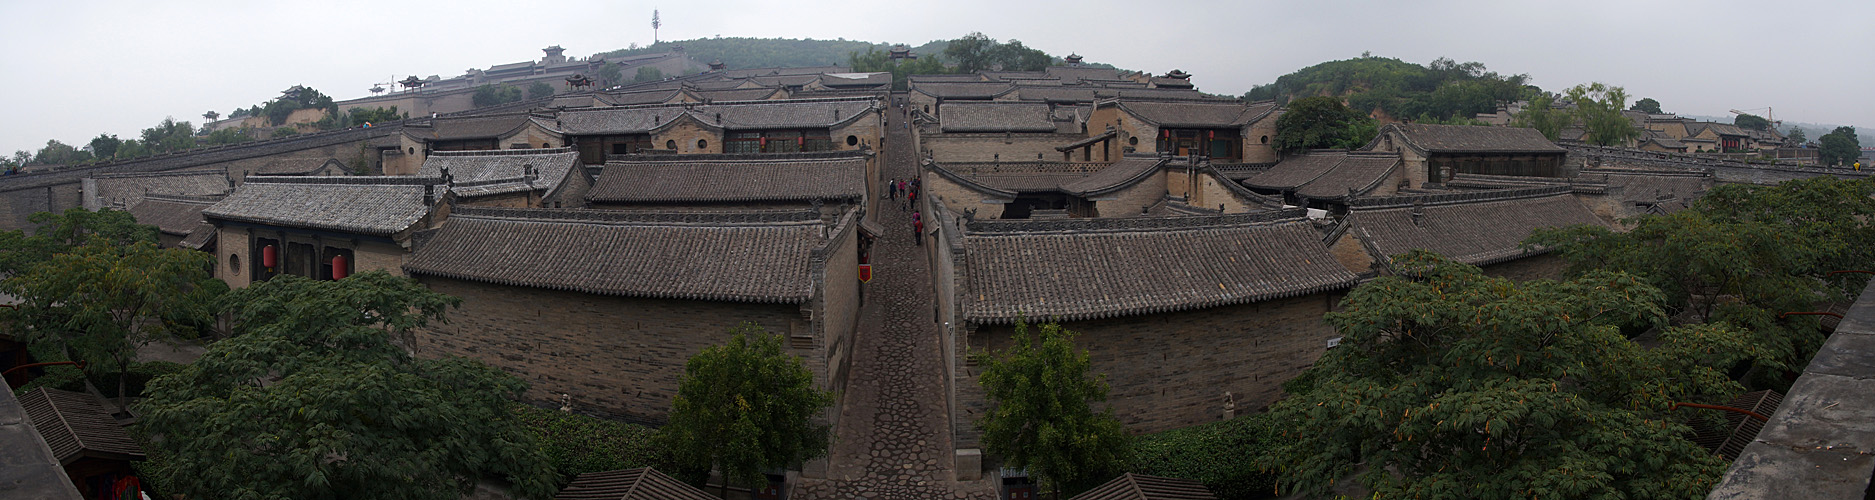 Photo panoramique de la résidence Wang (Pingyao)